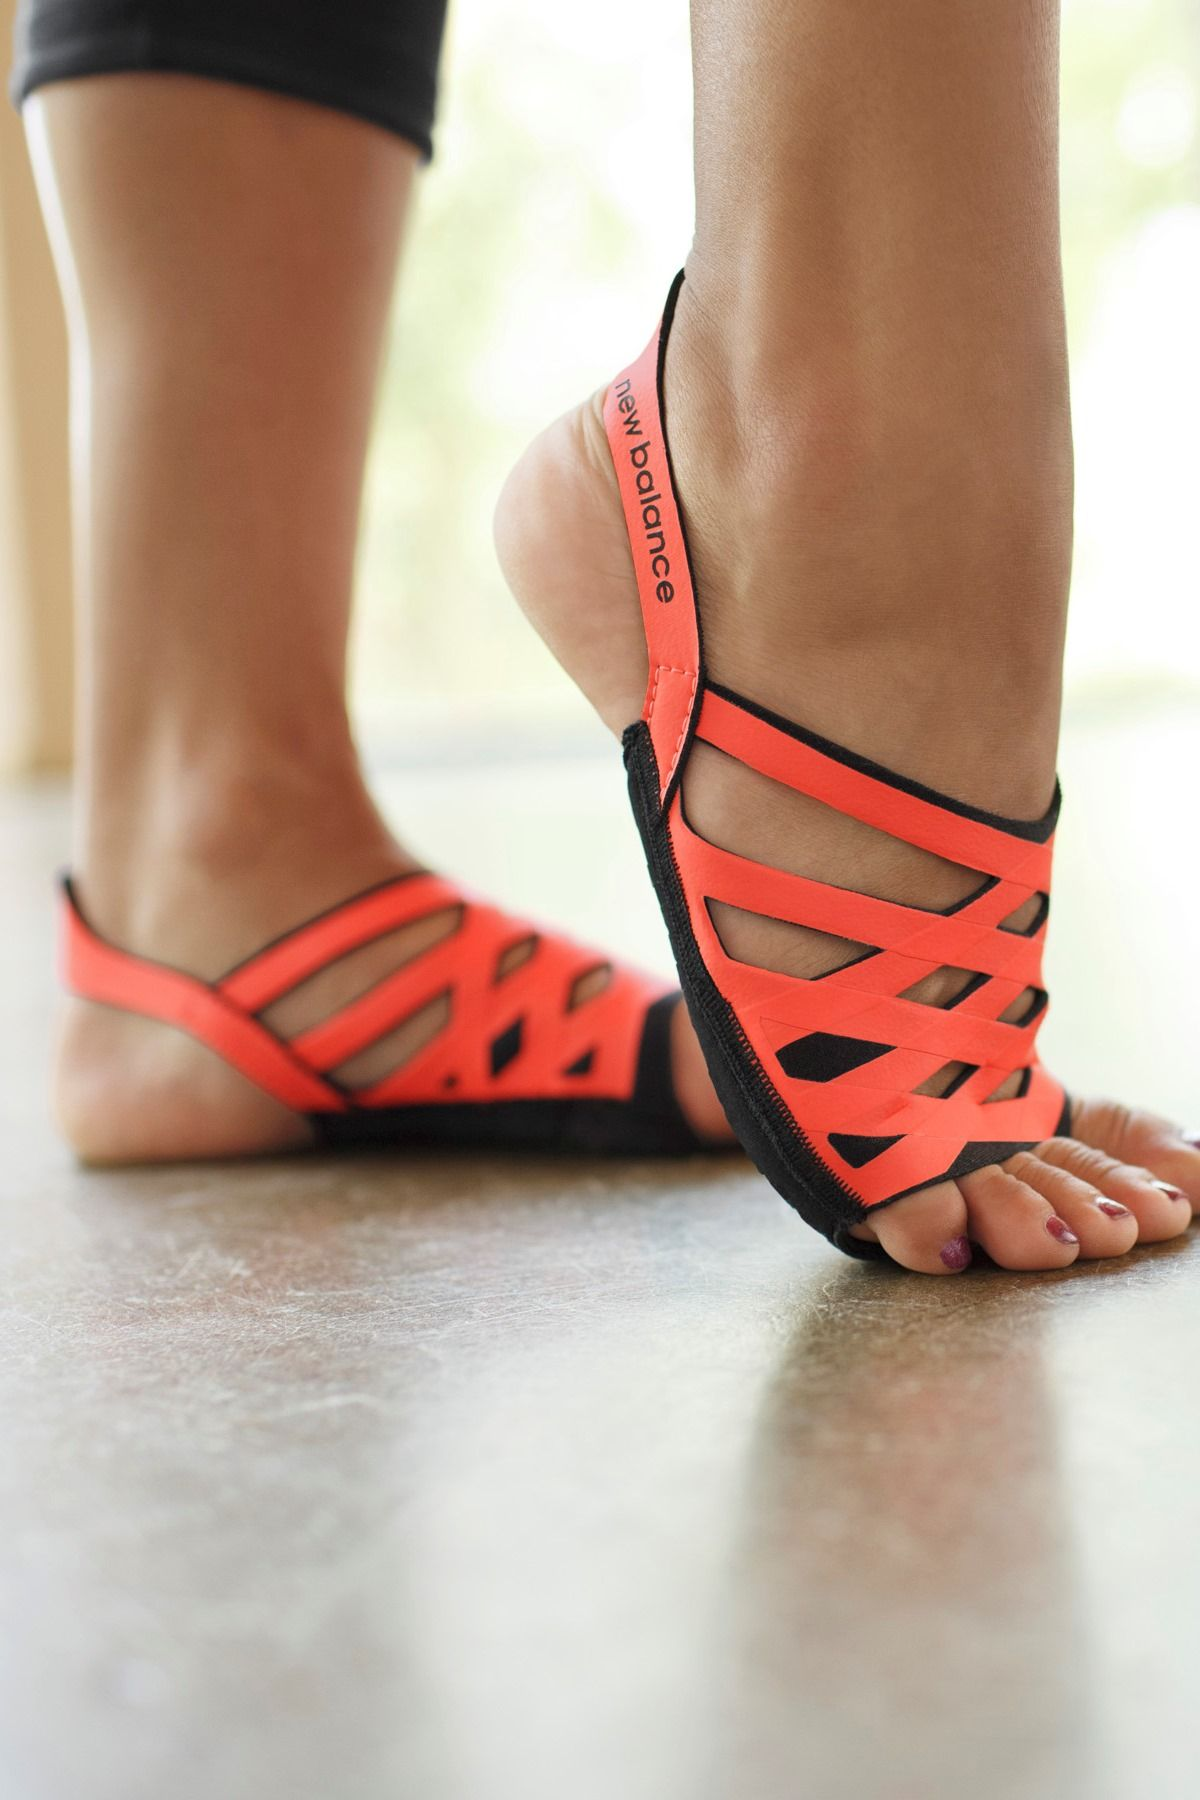 baf3a9b1e Move with confidence. Experience the Studio Skin. Barre Shoes, Pilates Shoes,  Pilates